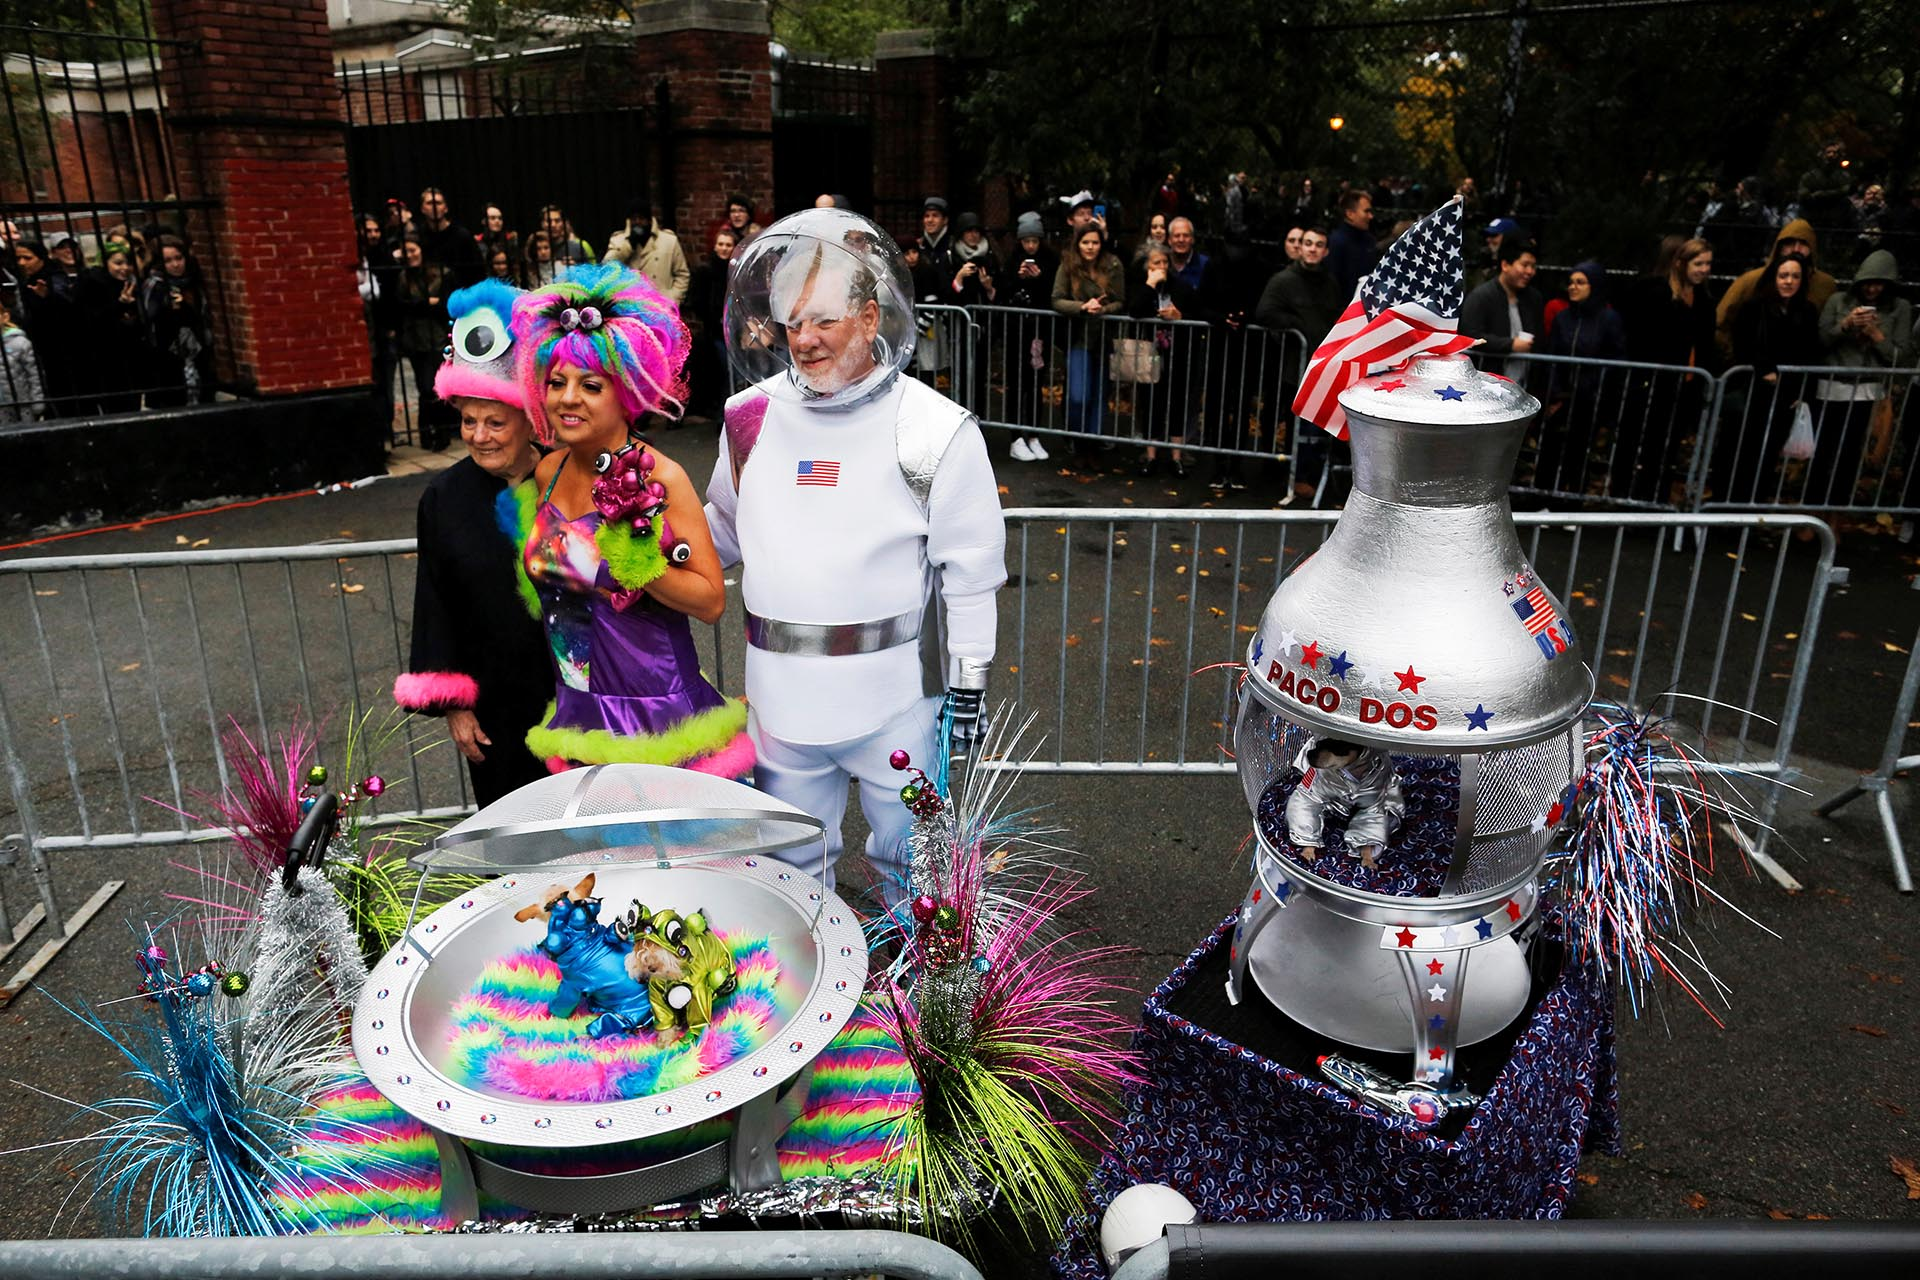 Revellers take part in the annual halloween dog parade at Manhattan's Tompkins Square Park in New York